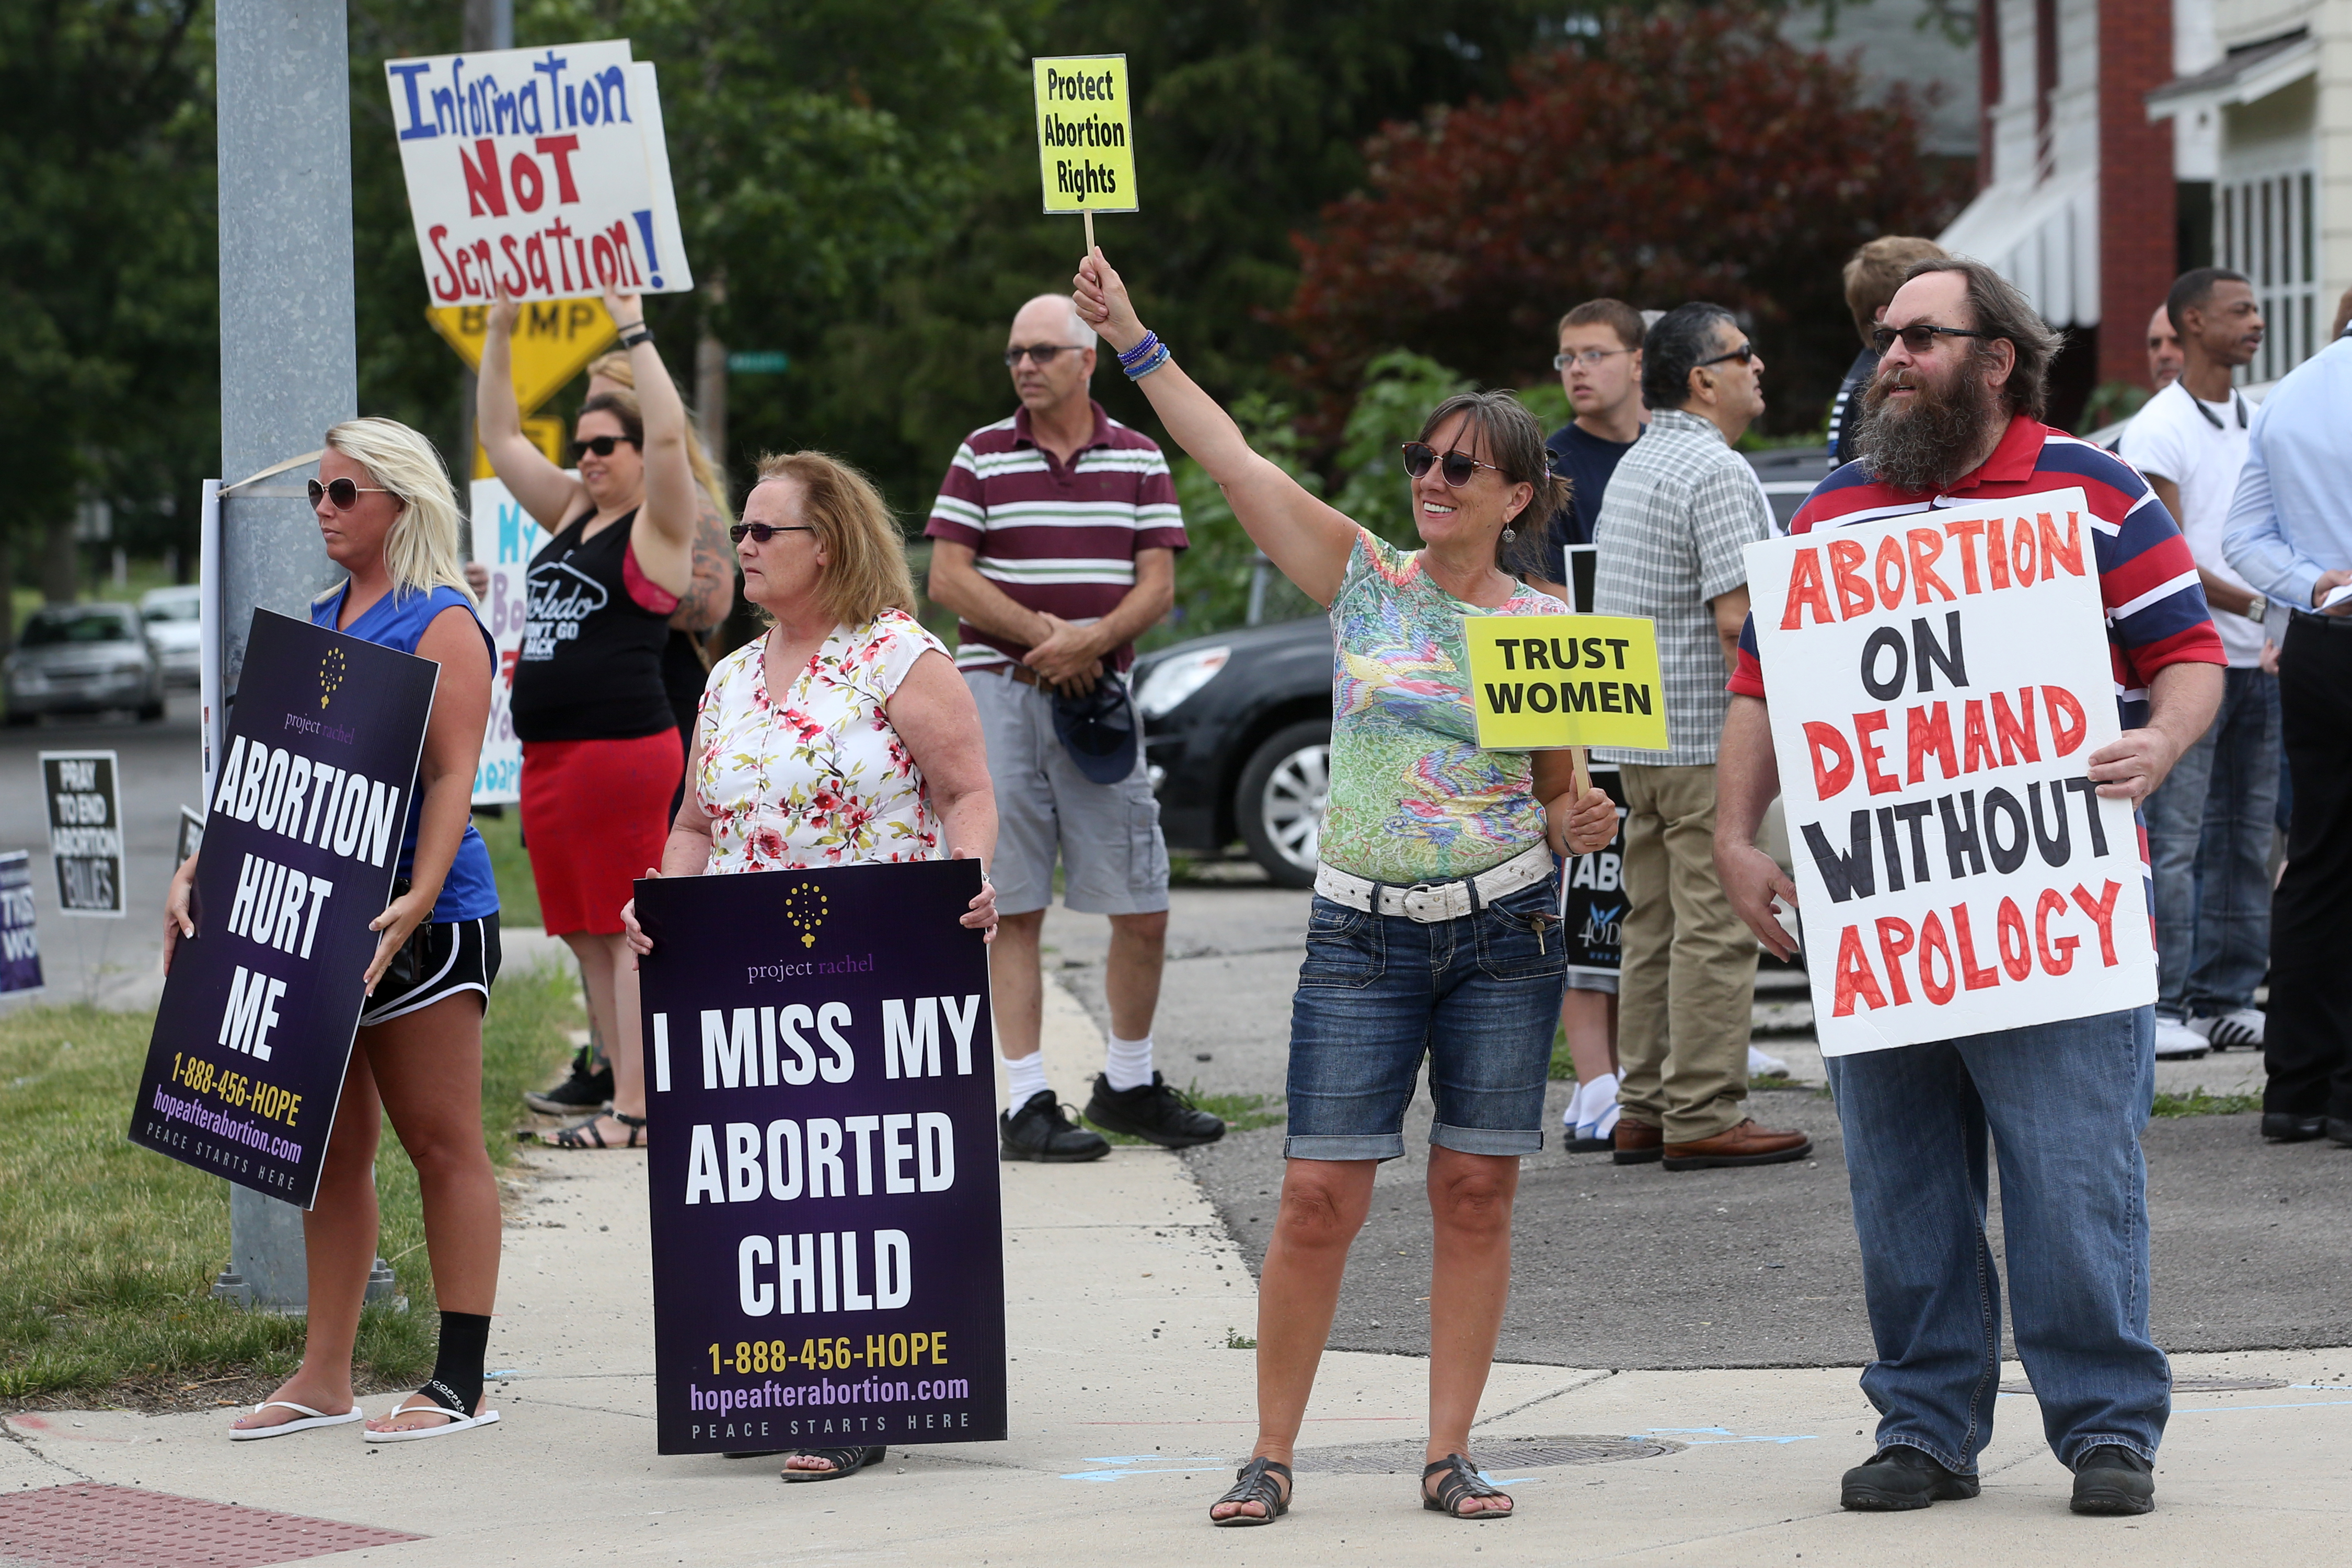 abortion womans right 1 abortion: a woman's right an examination of what may be the most controversial and crucial moral issue of our day tyler young conducts a candid discussion of abortion from cultural, scientific and biblical perspectives.